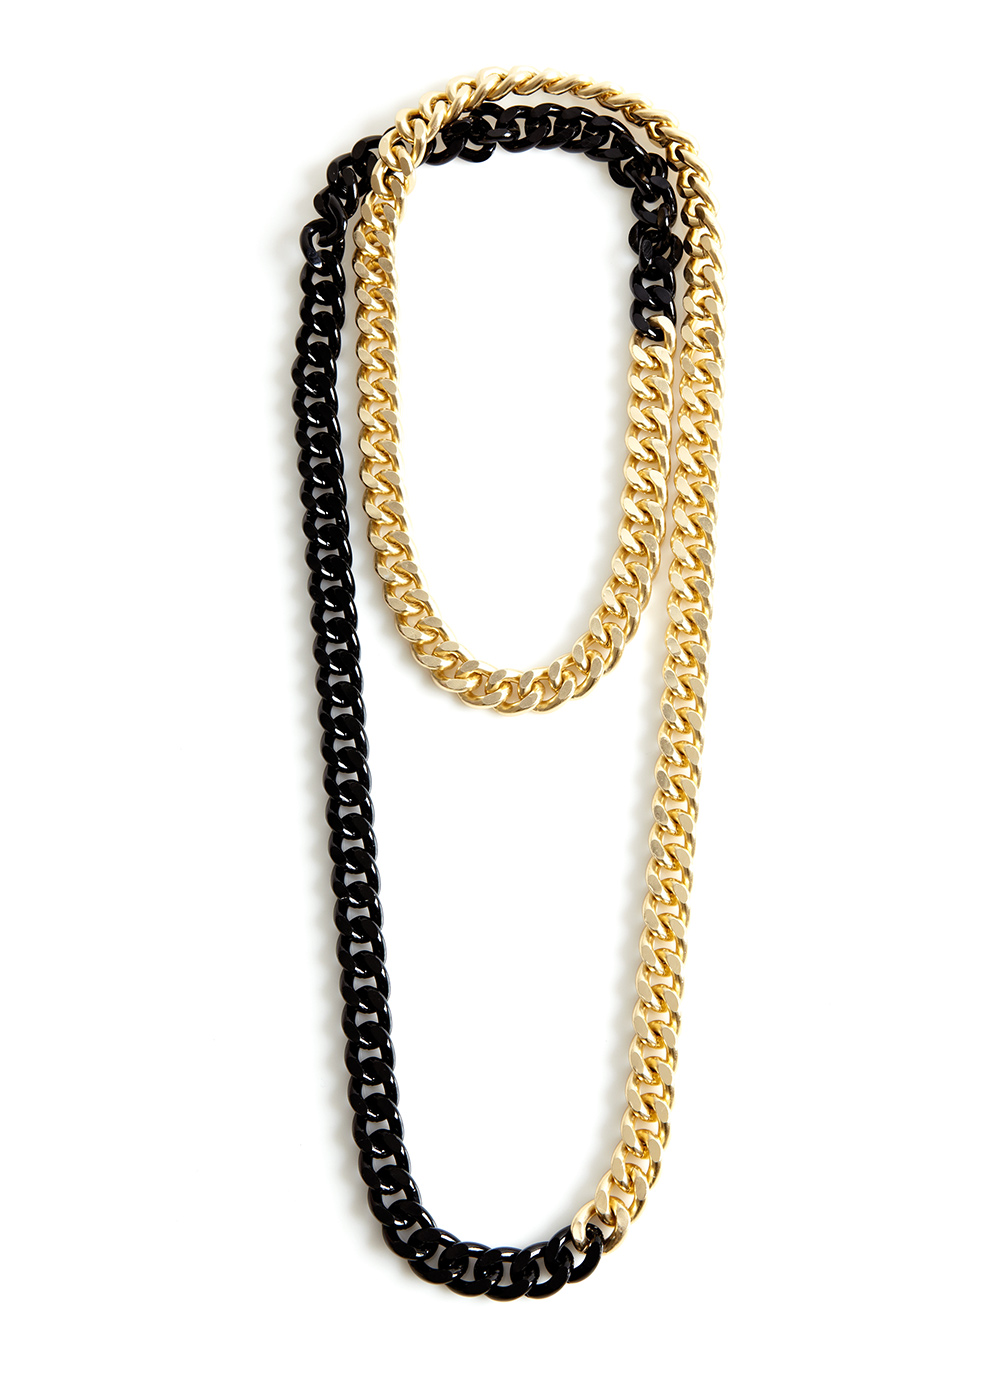 shizo-chain, black / gold